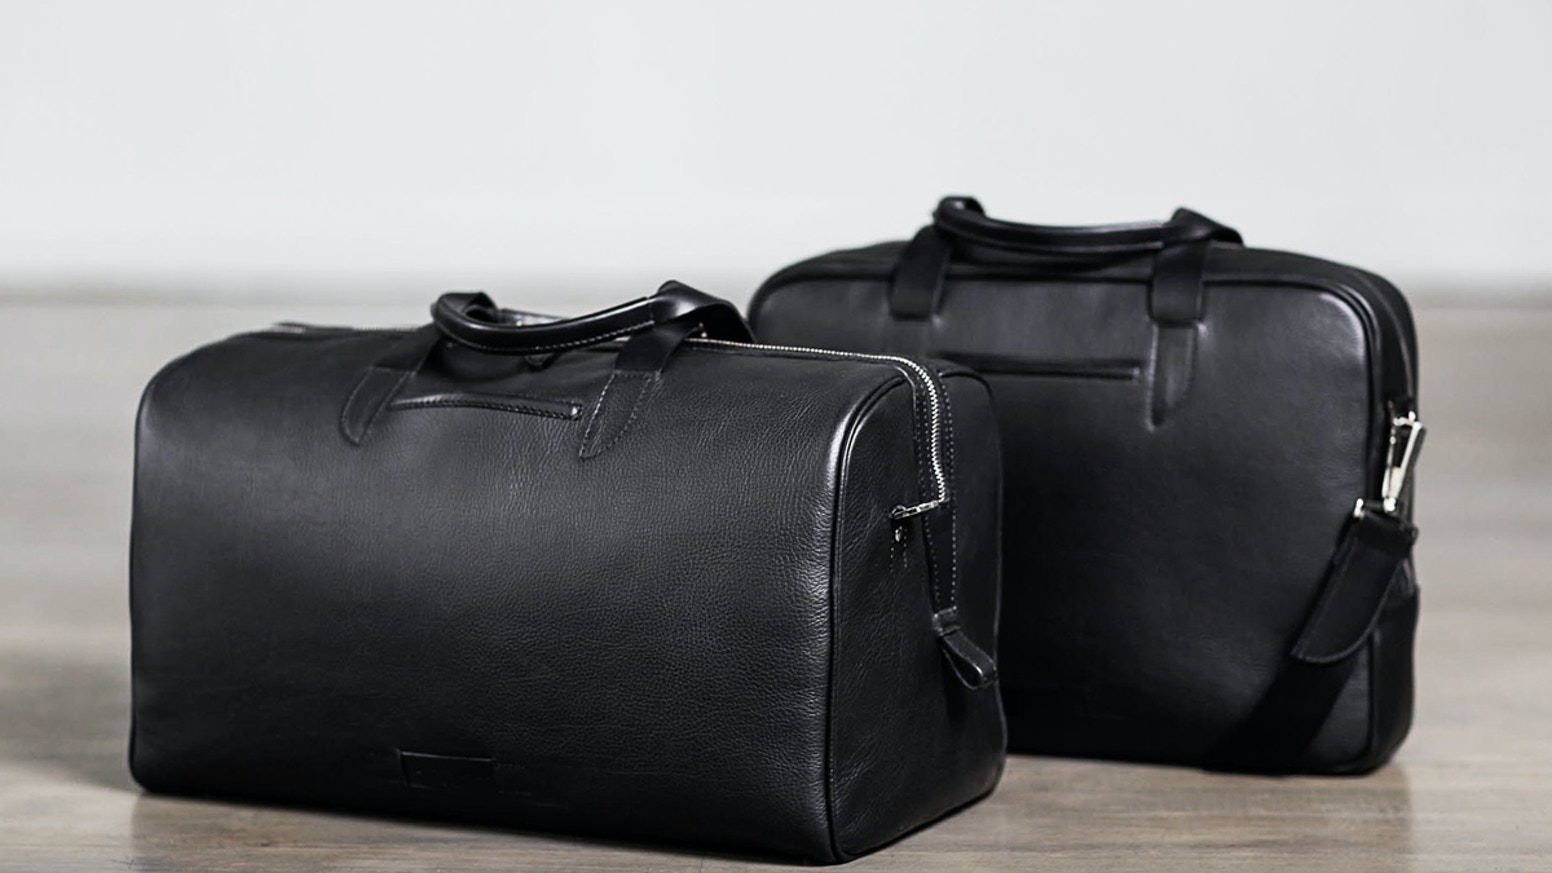 77d7ad094 Oppermann London: Luxury Leather Goods by Mattis & Niklas Oppermann ...